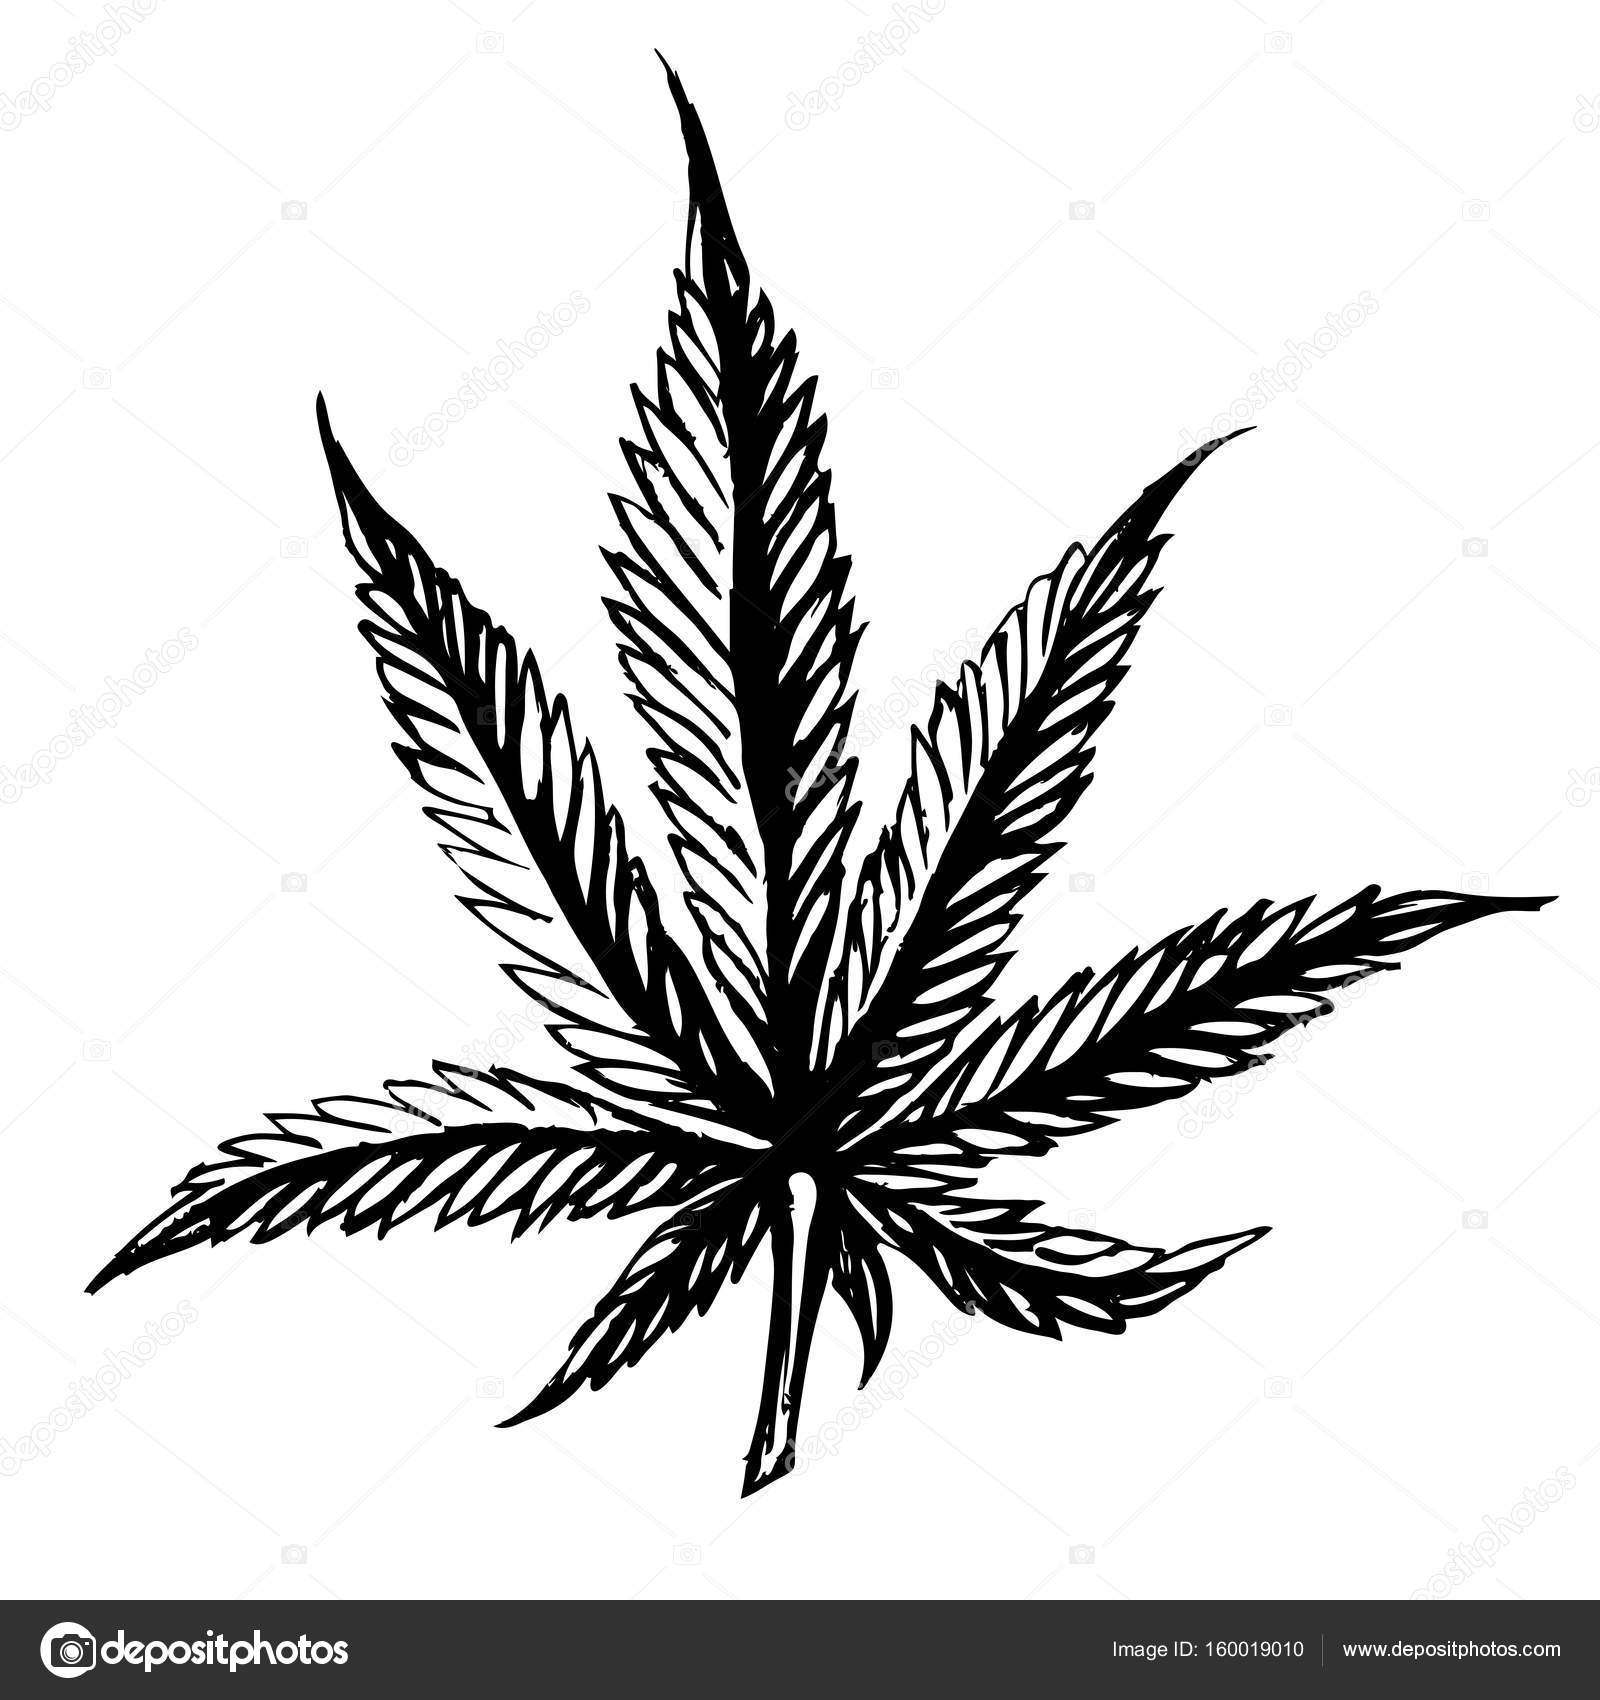 1600x1700 Cannabis Leaves Sketch Hand Drawn Isolated On White Background